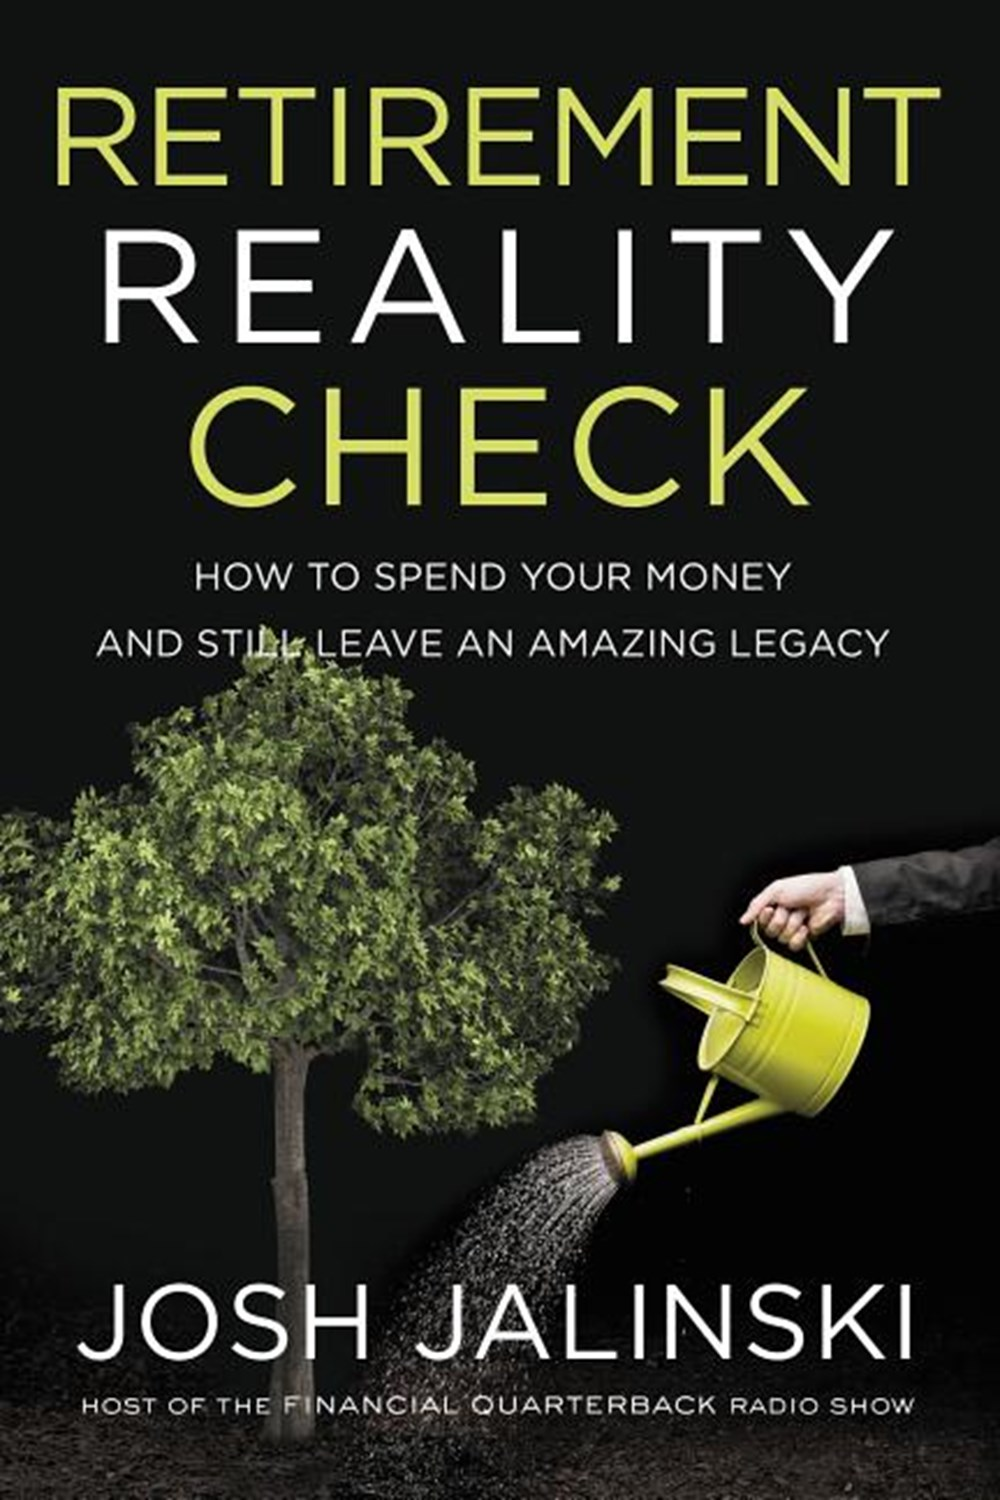 Retirement Reality Check How to Spend Your Money and Still Leave an Amazing Legacy